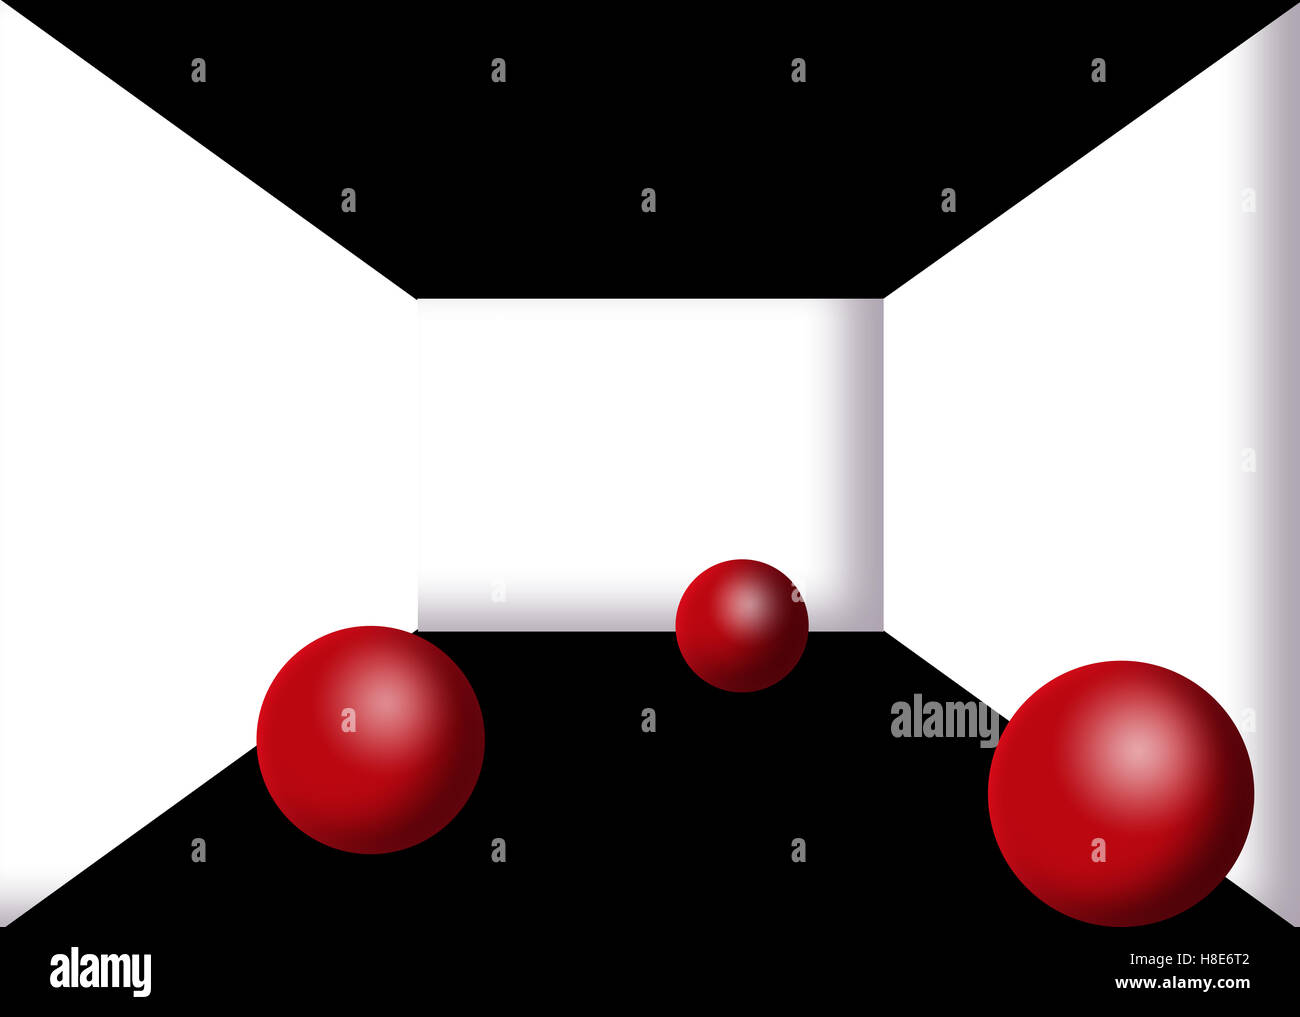 3D Illustration of three red spheres - Stock Image